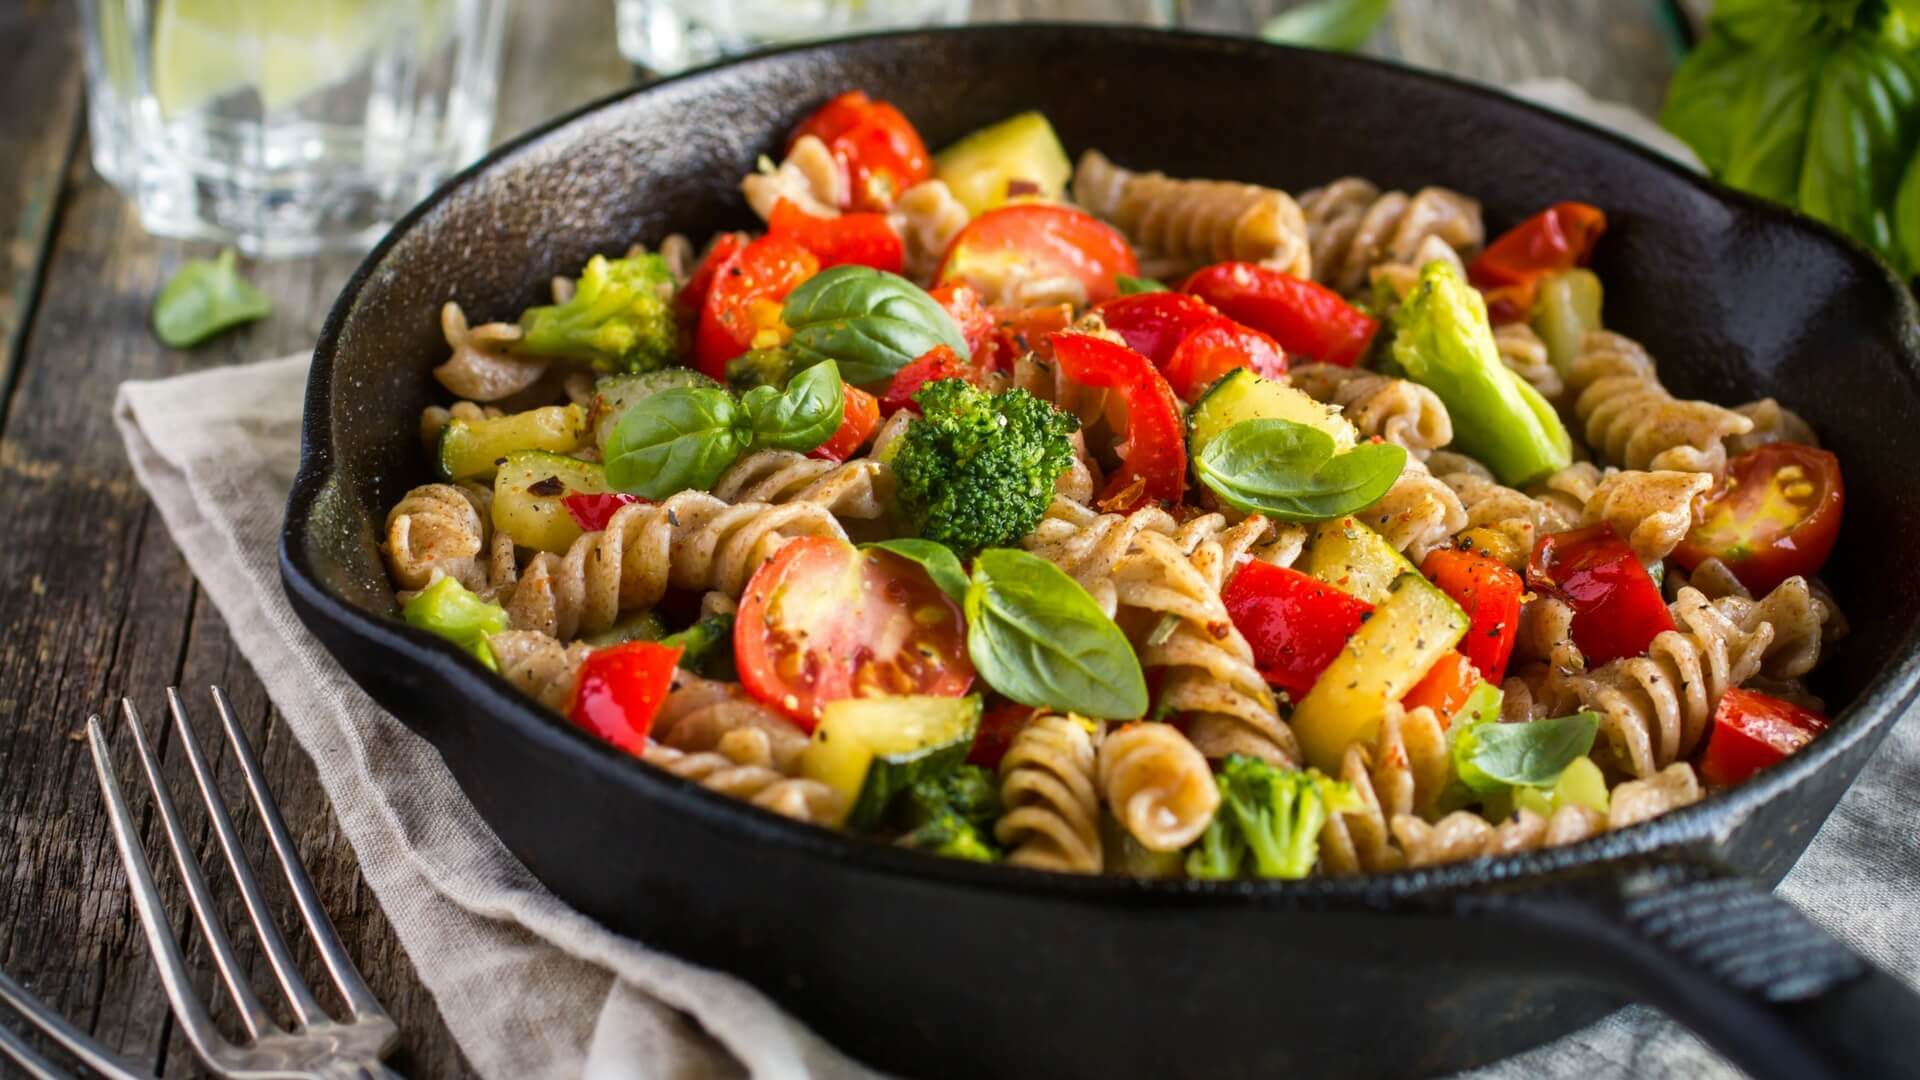 Dishes such as pasta are often avoided by people looking to lose weight, but are they done so unnecessarily?